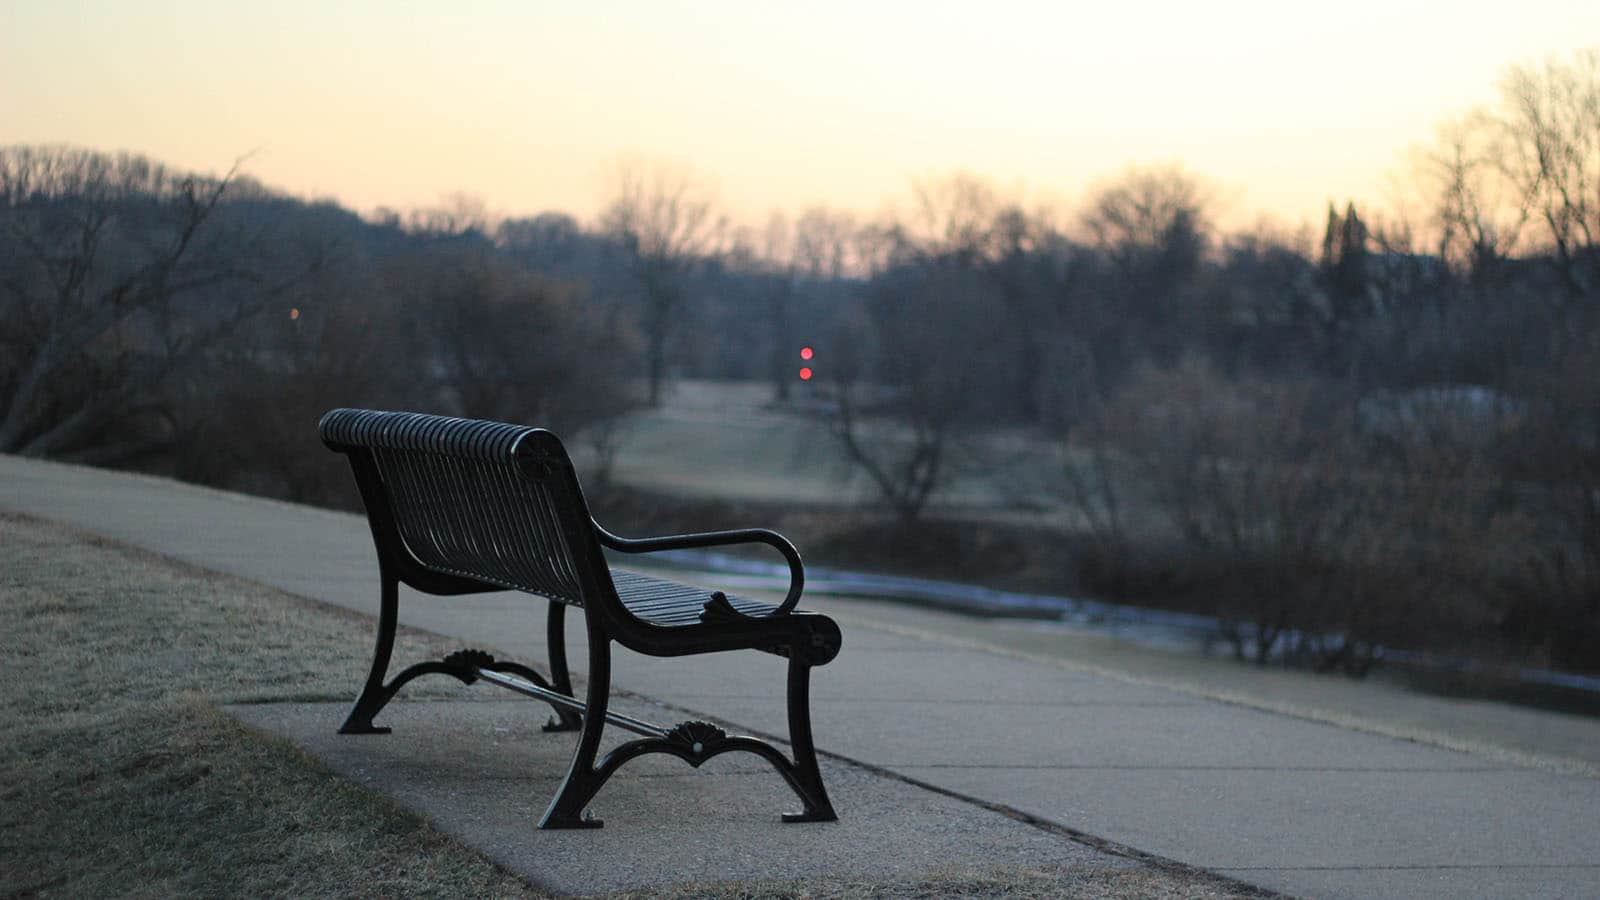 Bench in park image